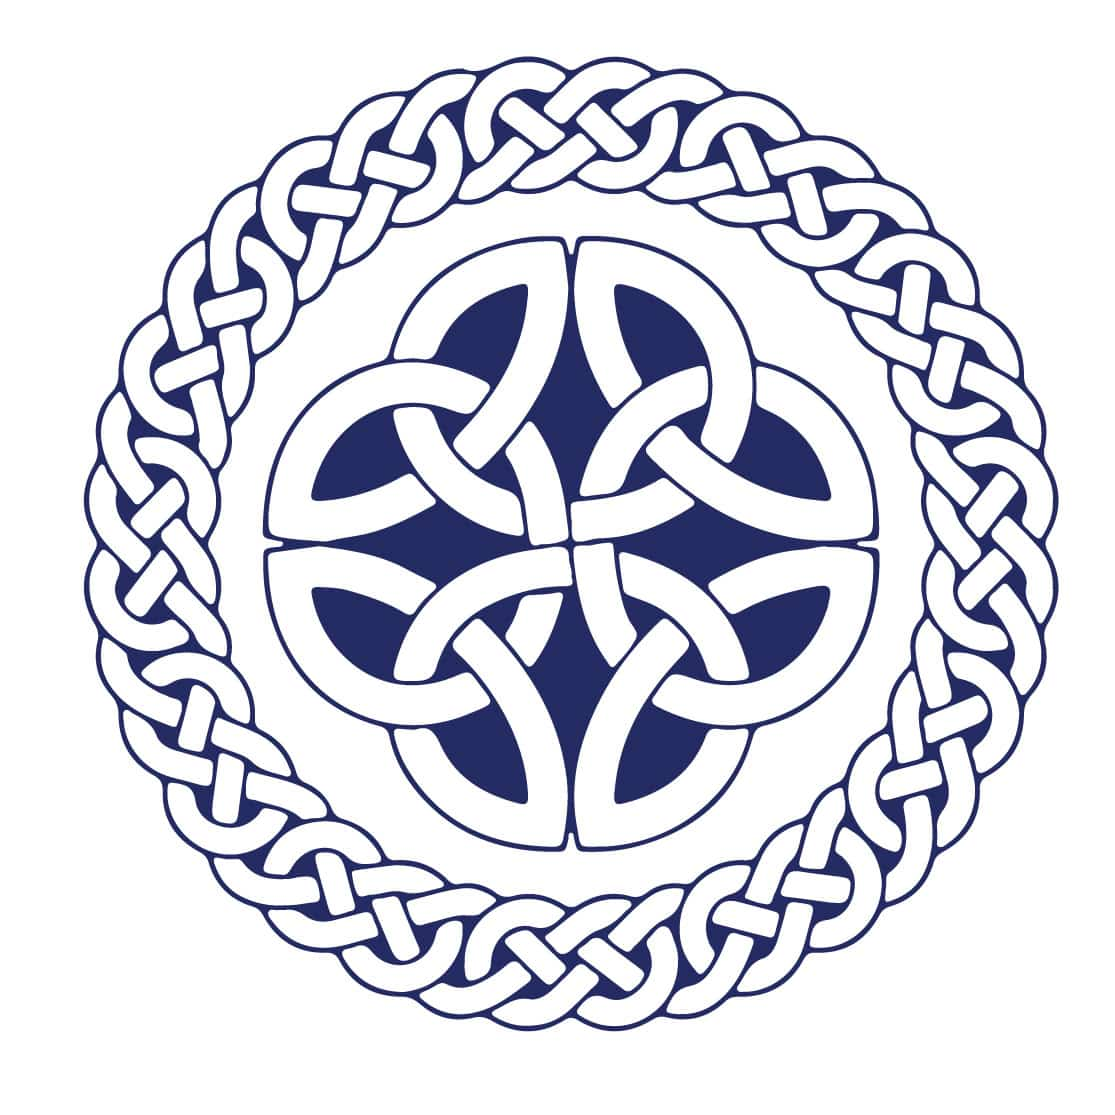 The Celtic Knot Symbol And Its Meaning Mythologian Net